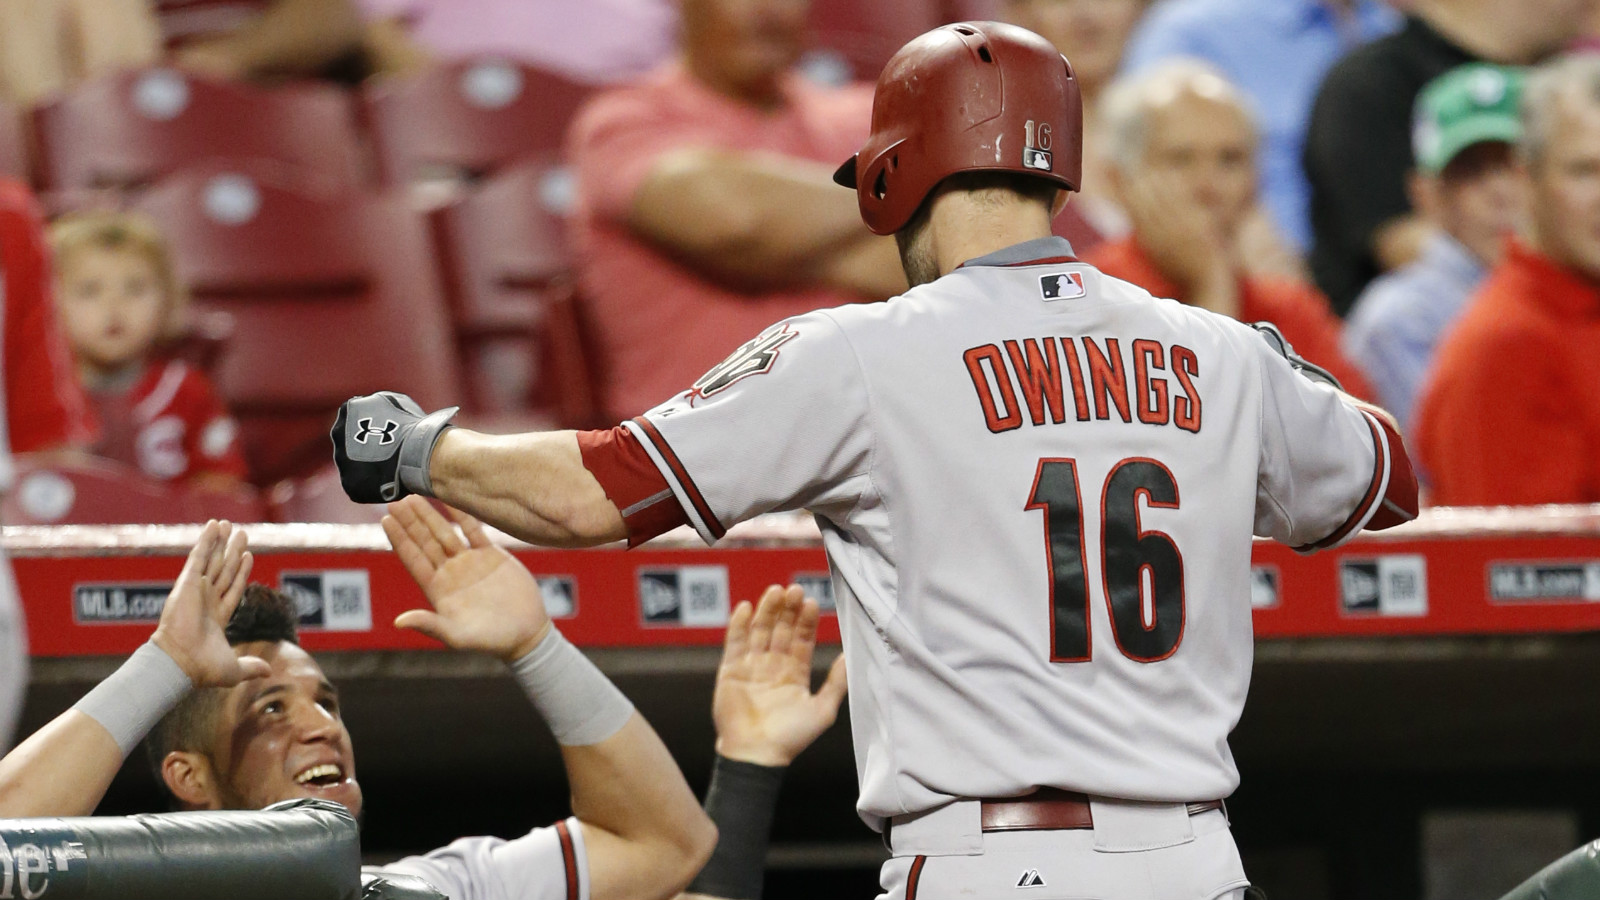 Reds give up lead late, lose 5-4